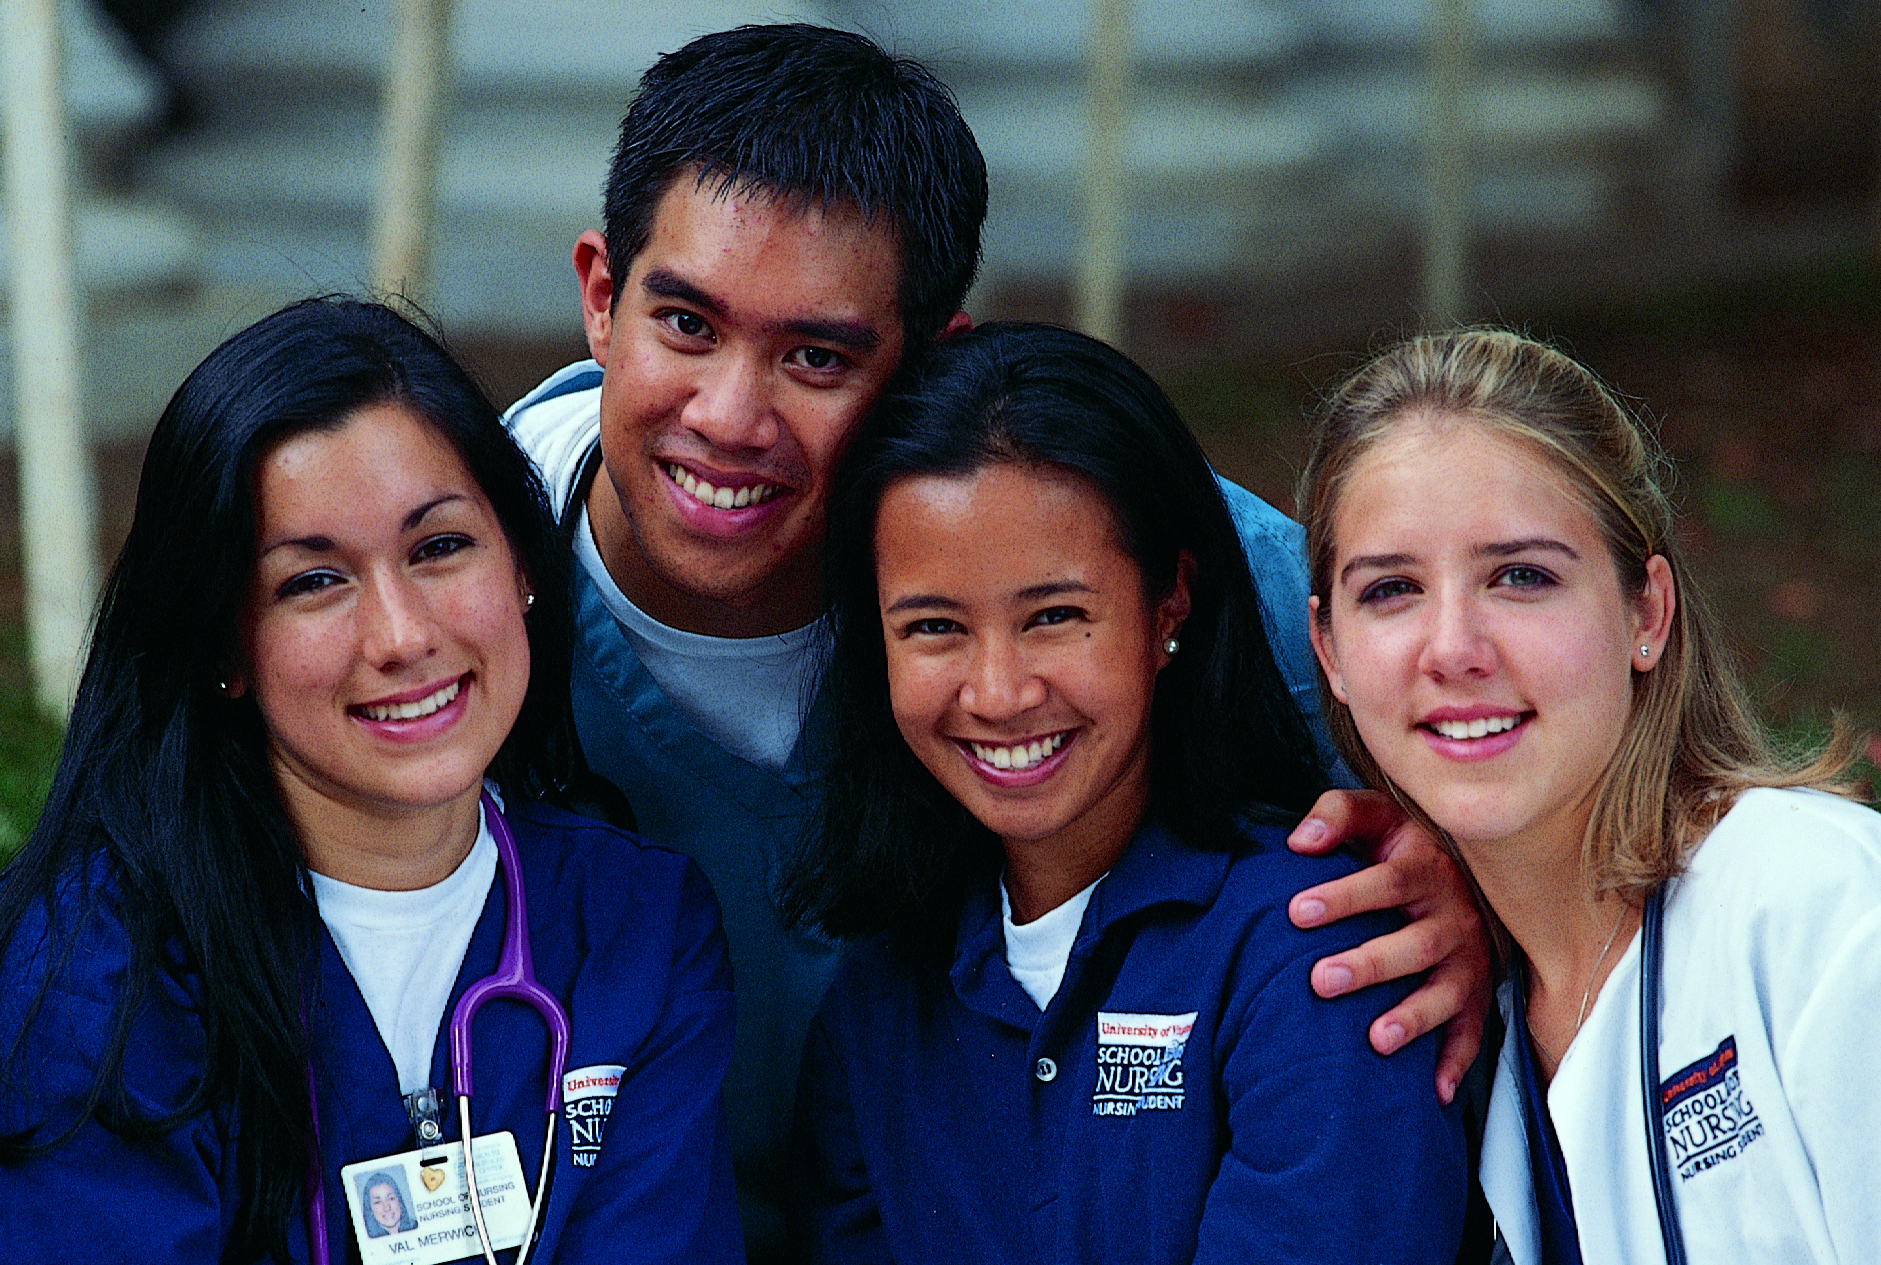 Mr Jefferson's Nurses cover - student nurses, circa 2000 Eleanor Crowder Bjoring Center for Nursing Historical Inquiry, University of Virginia School of Nursing.